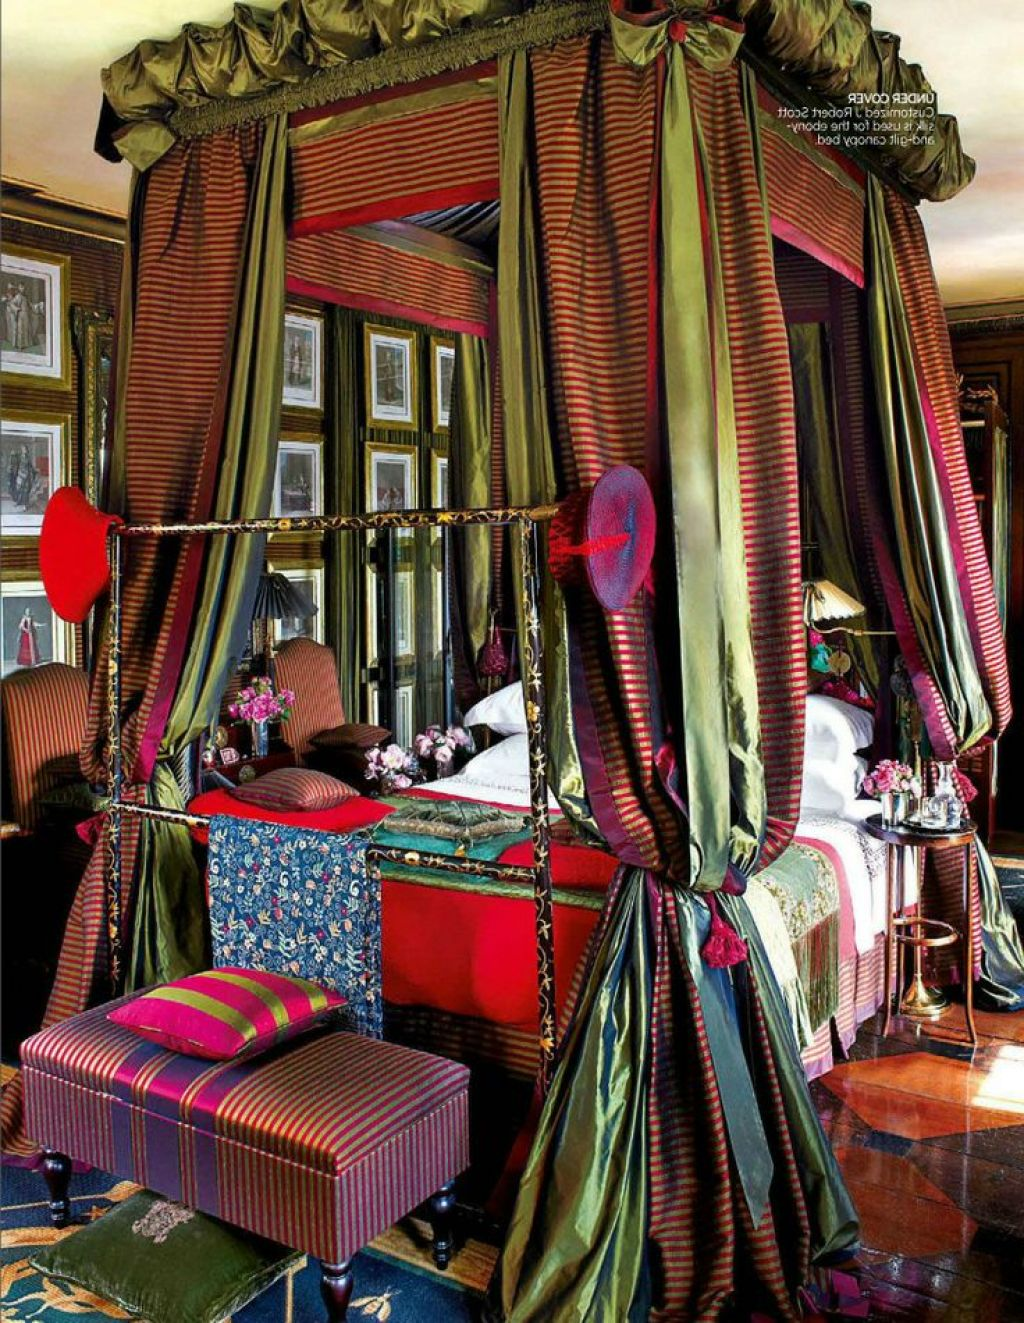 A colorful explosion within a four poster bed